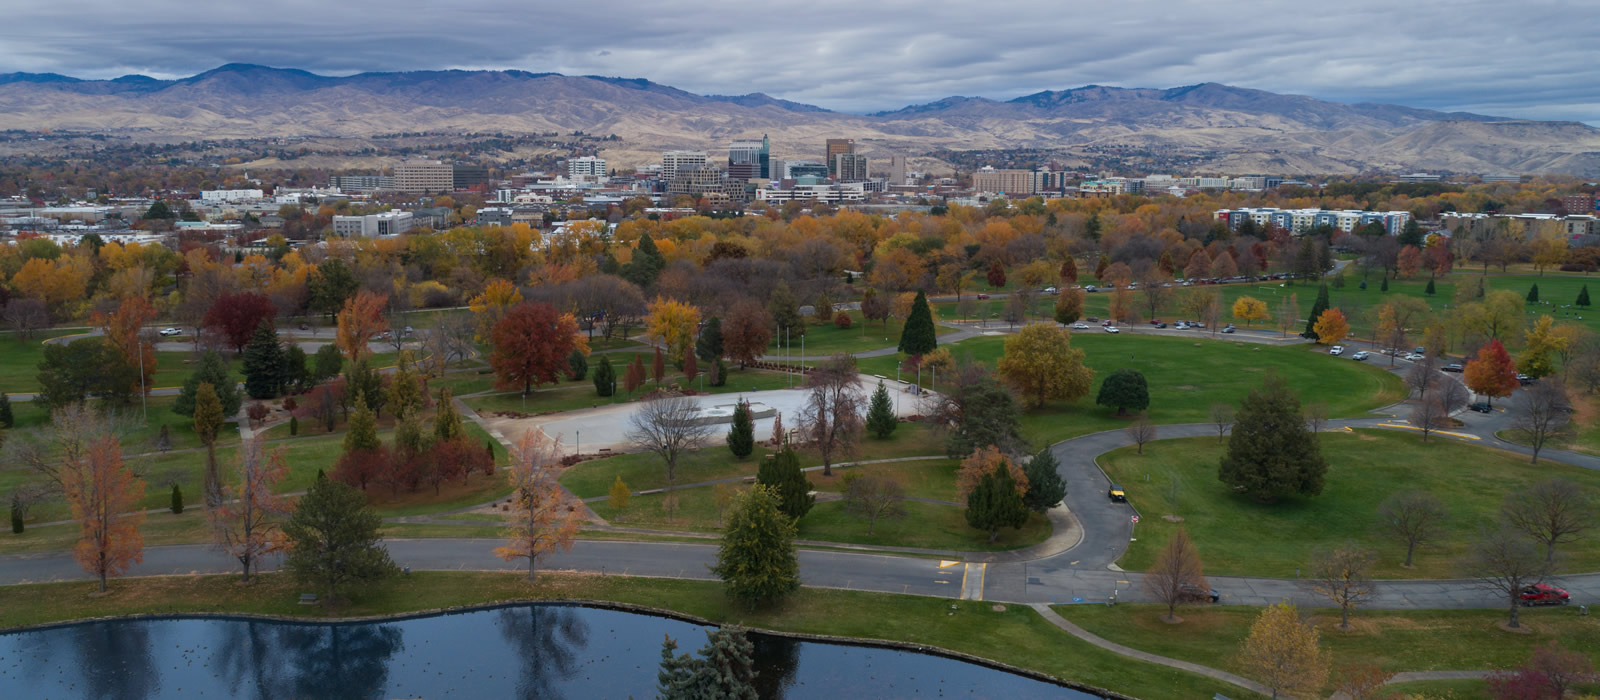 Julia Davis Park Downtown Boise Idaho